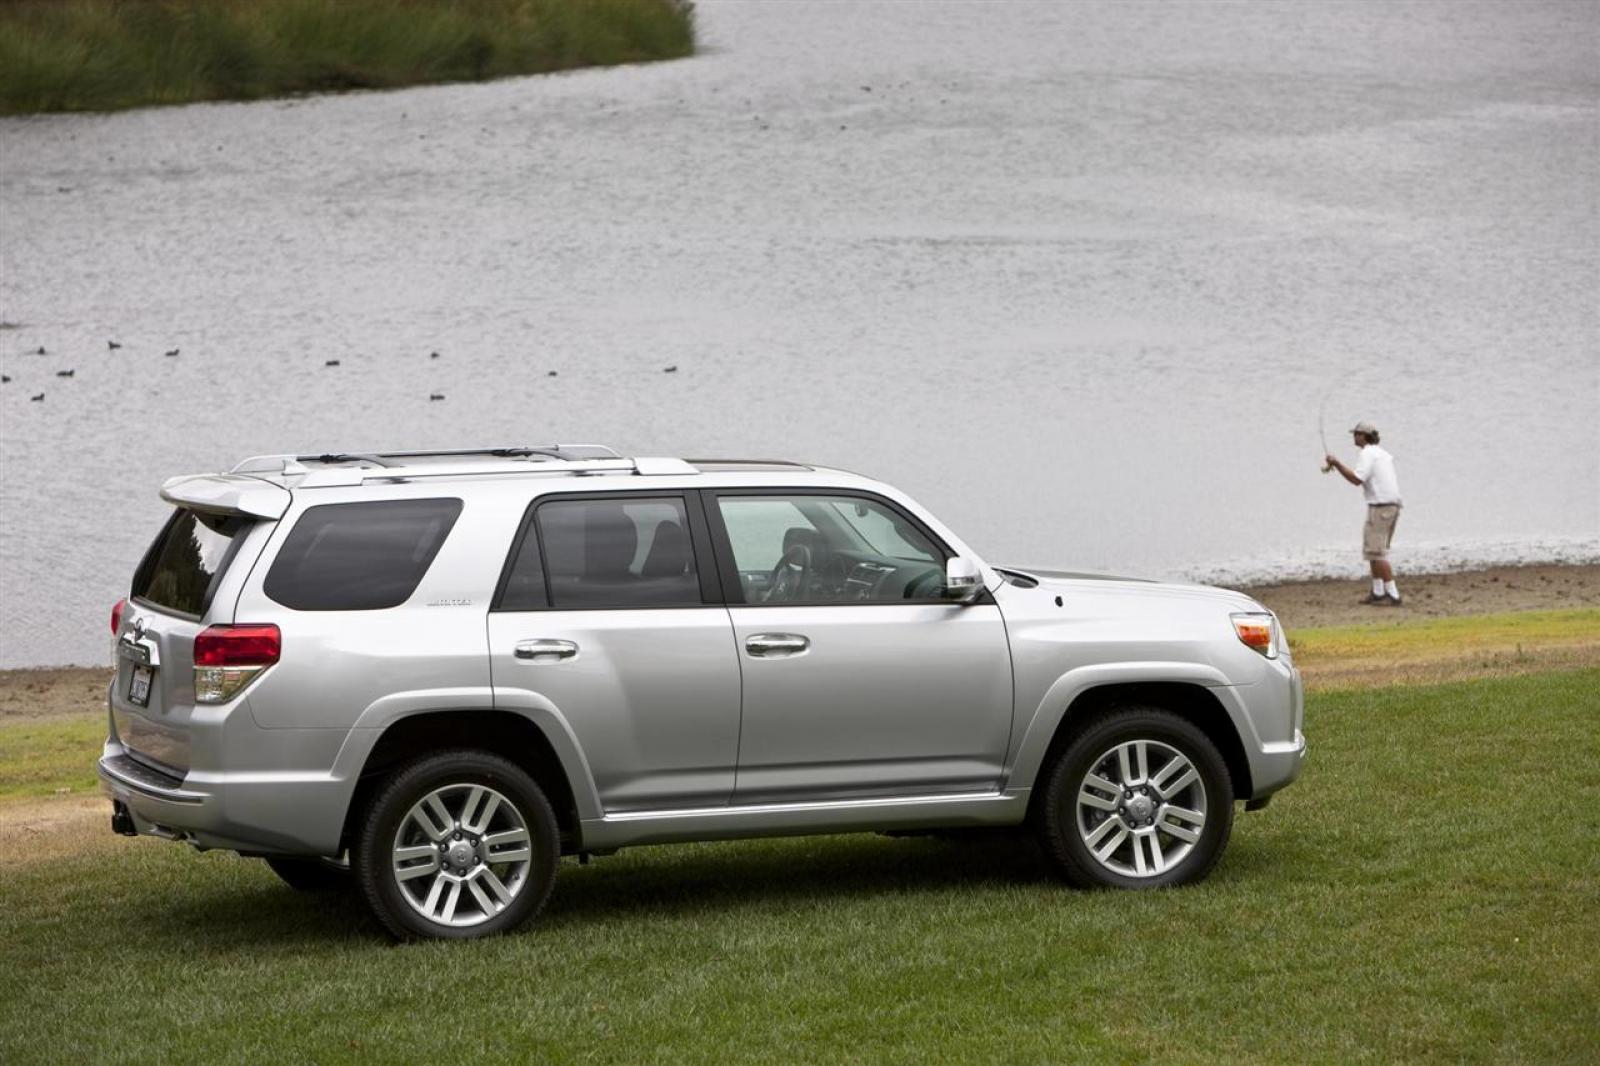 2012 toyota 4runner information and photos zombiedrive. Black Bedroom Furniture Sets. Home Design Ideas